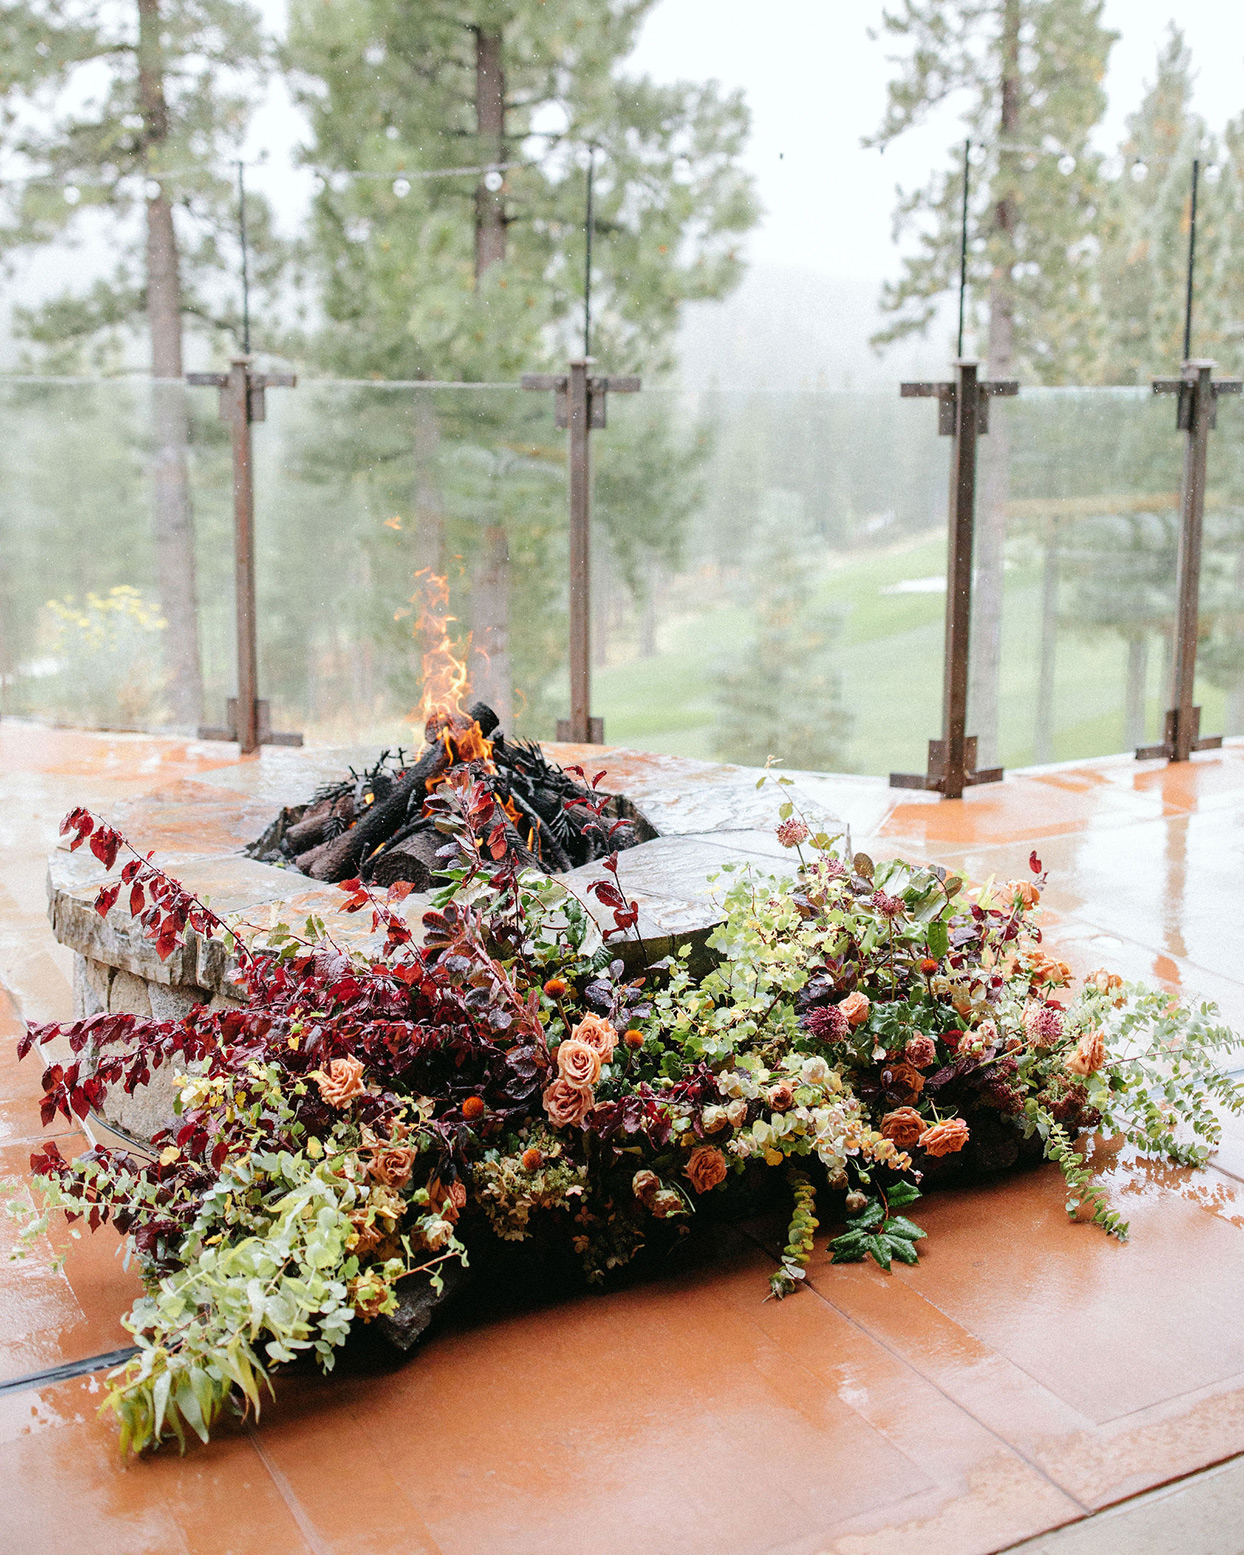 clare tim wedding ceremony floor florals next to fire pit